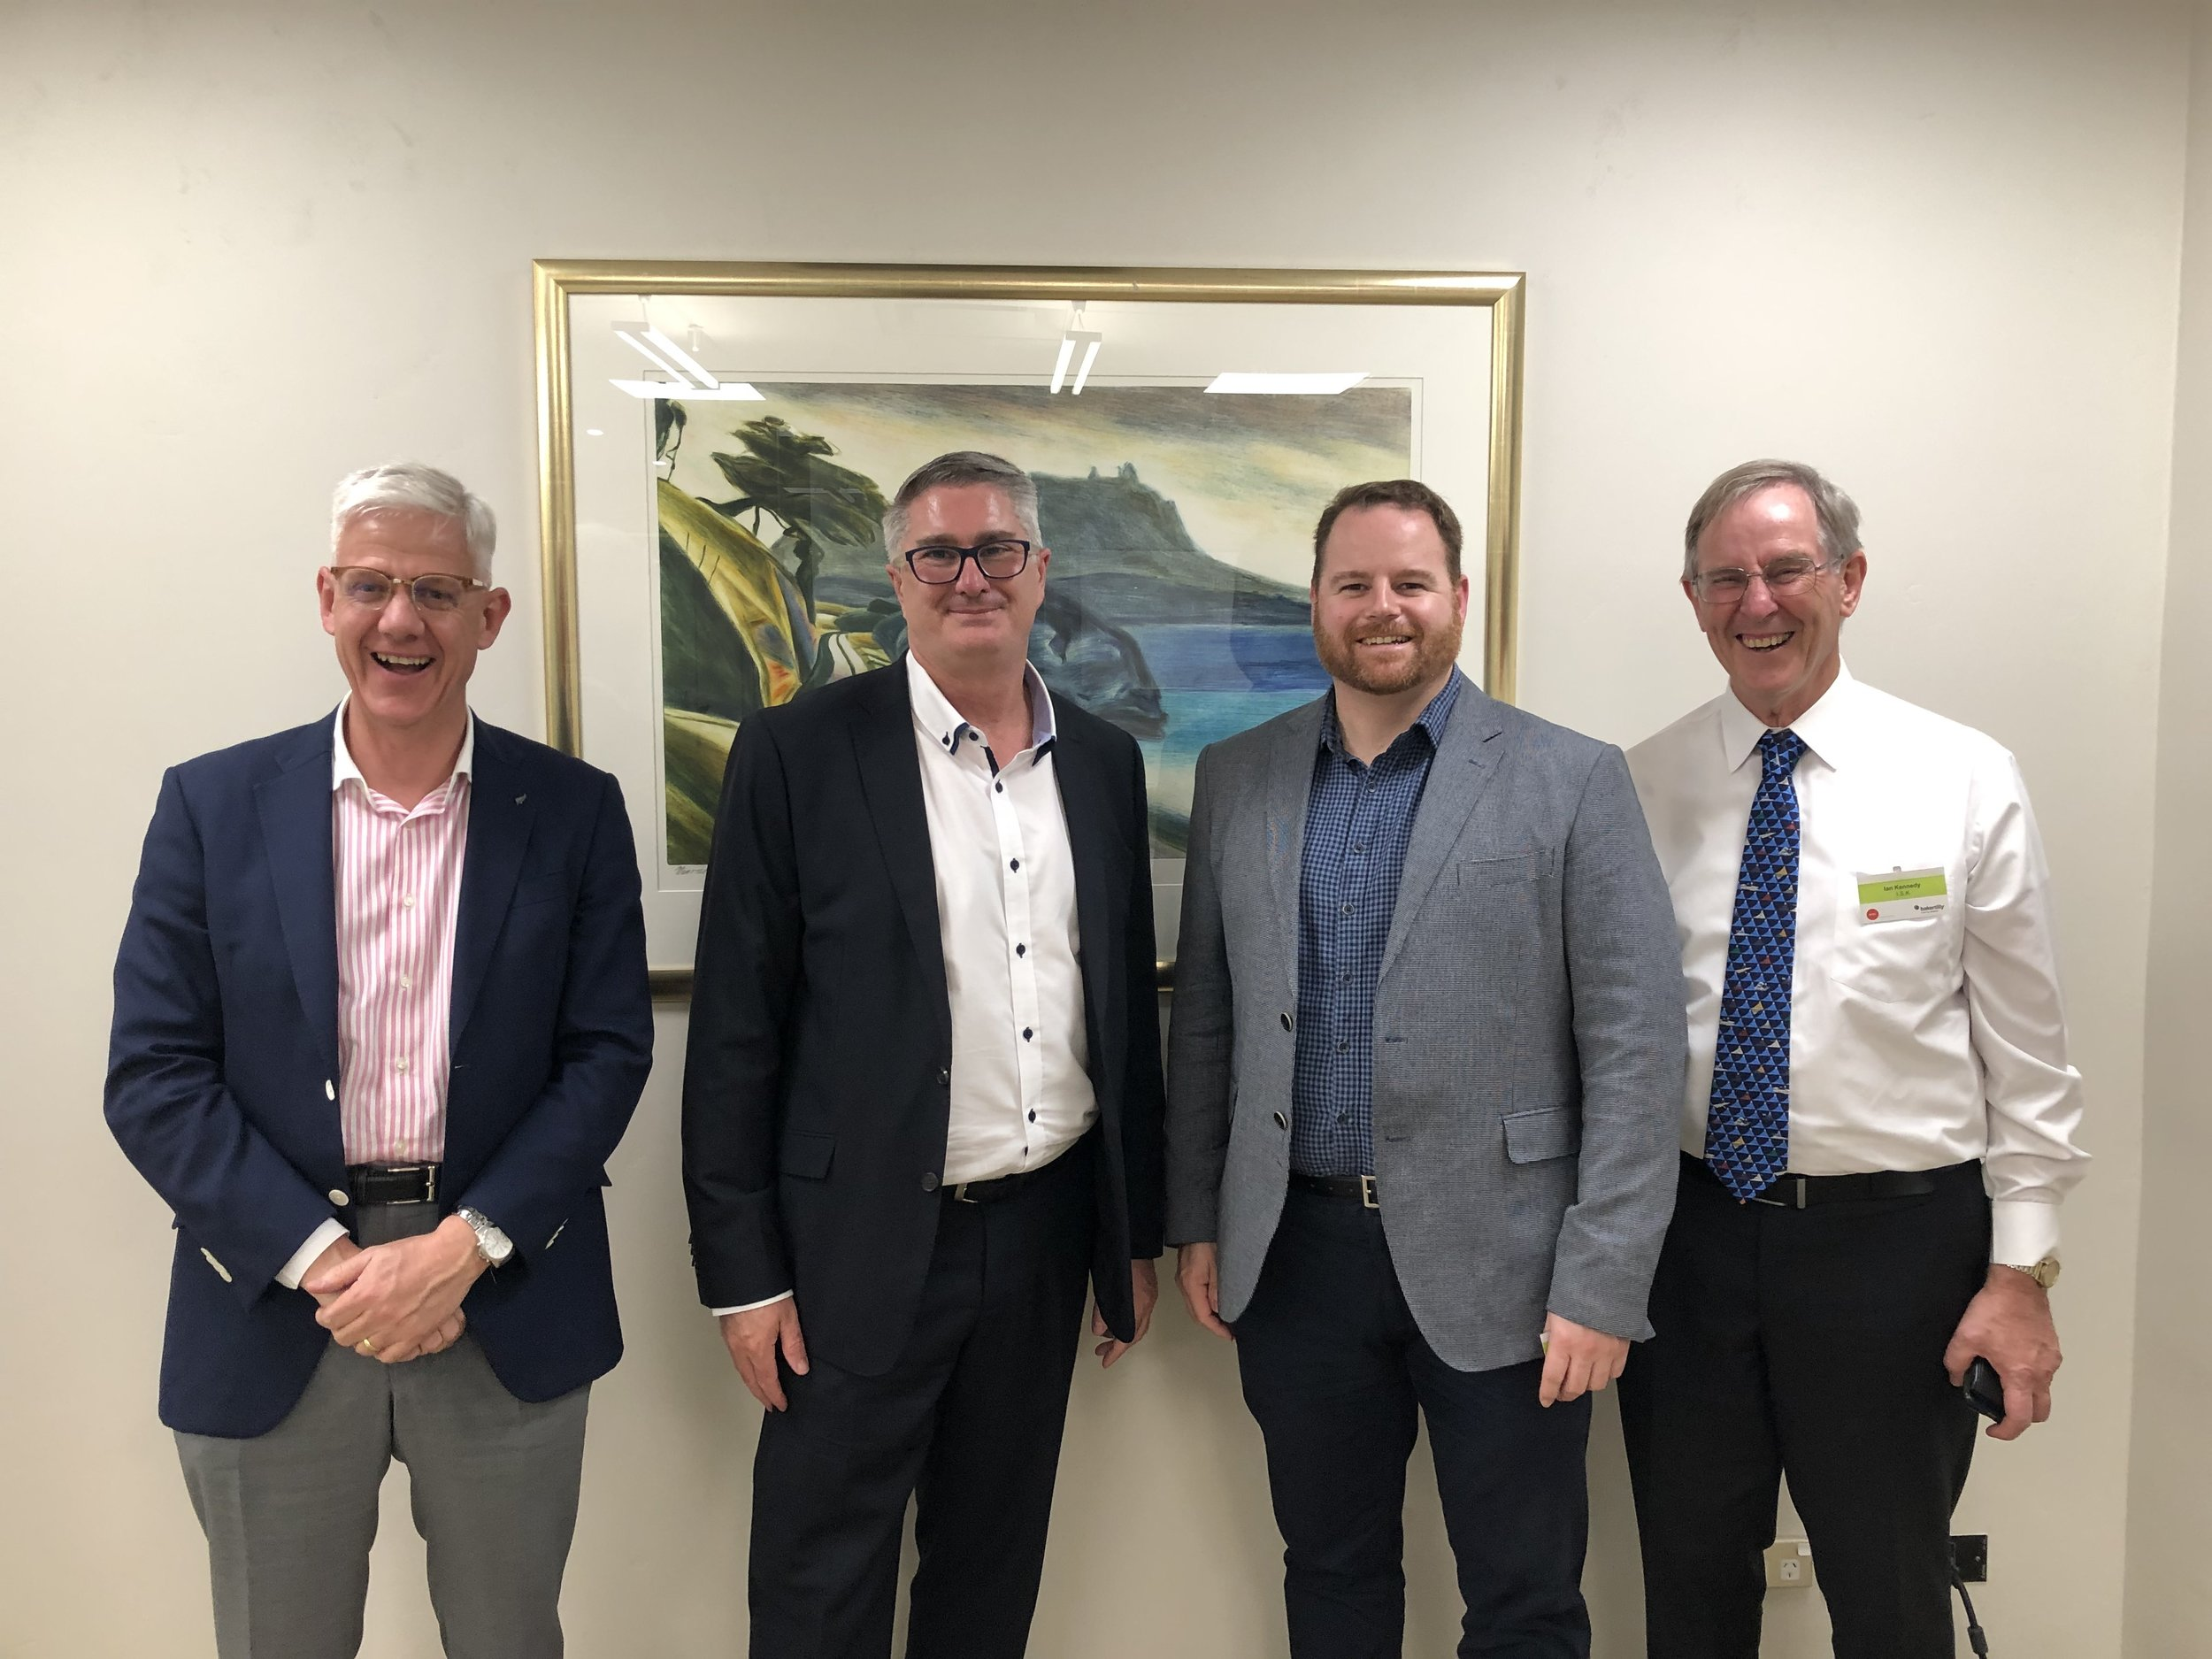 Pictured L-R Jason Reeves BNZ and JNZBC, Matthew Chandler-Wall Aon, Paul McCarrison Aon, Ian Kennedy Chairman JNZBC